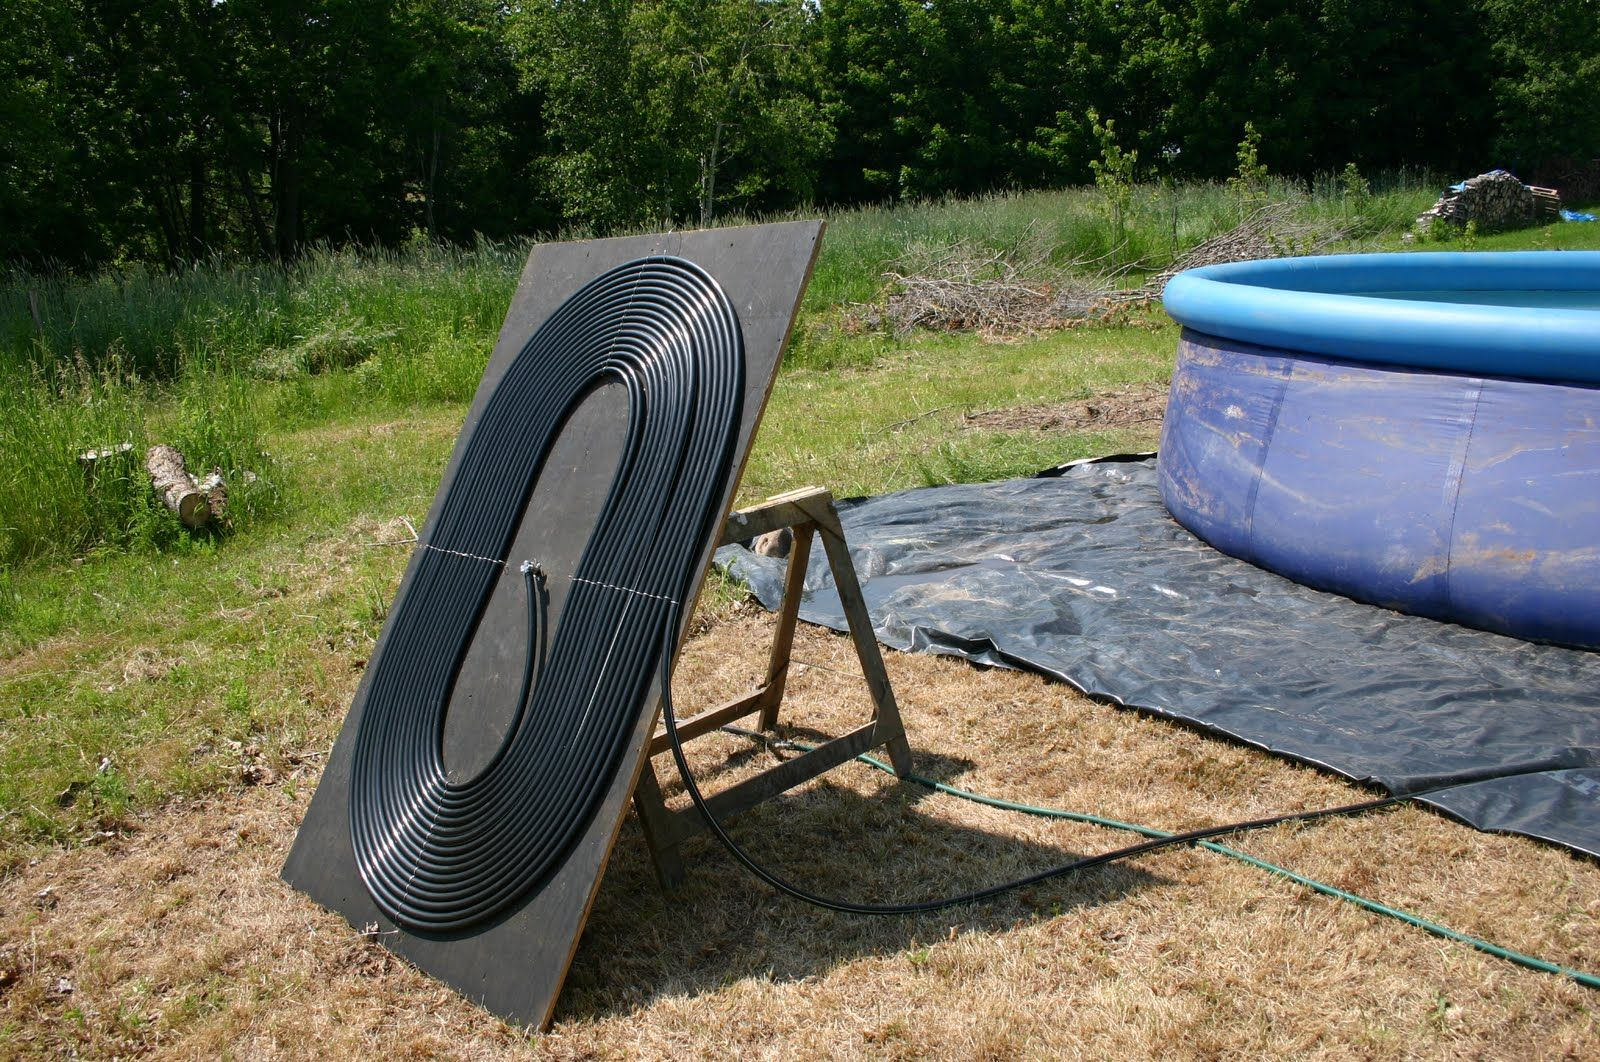 Yana And Peter Homeshow How To Heat A Pool Diy Swimming Pool Solar Pool Heater Diy Pool Heater